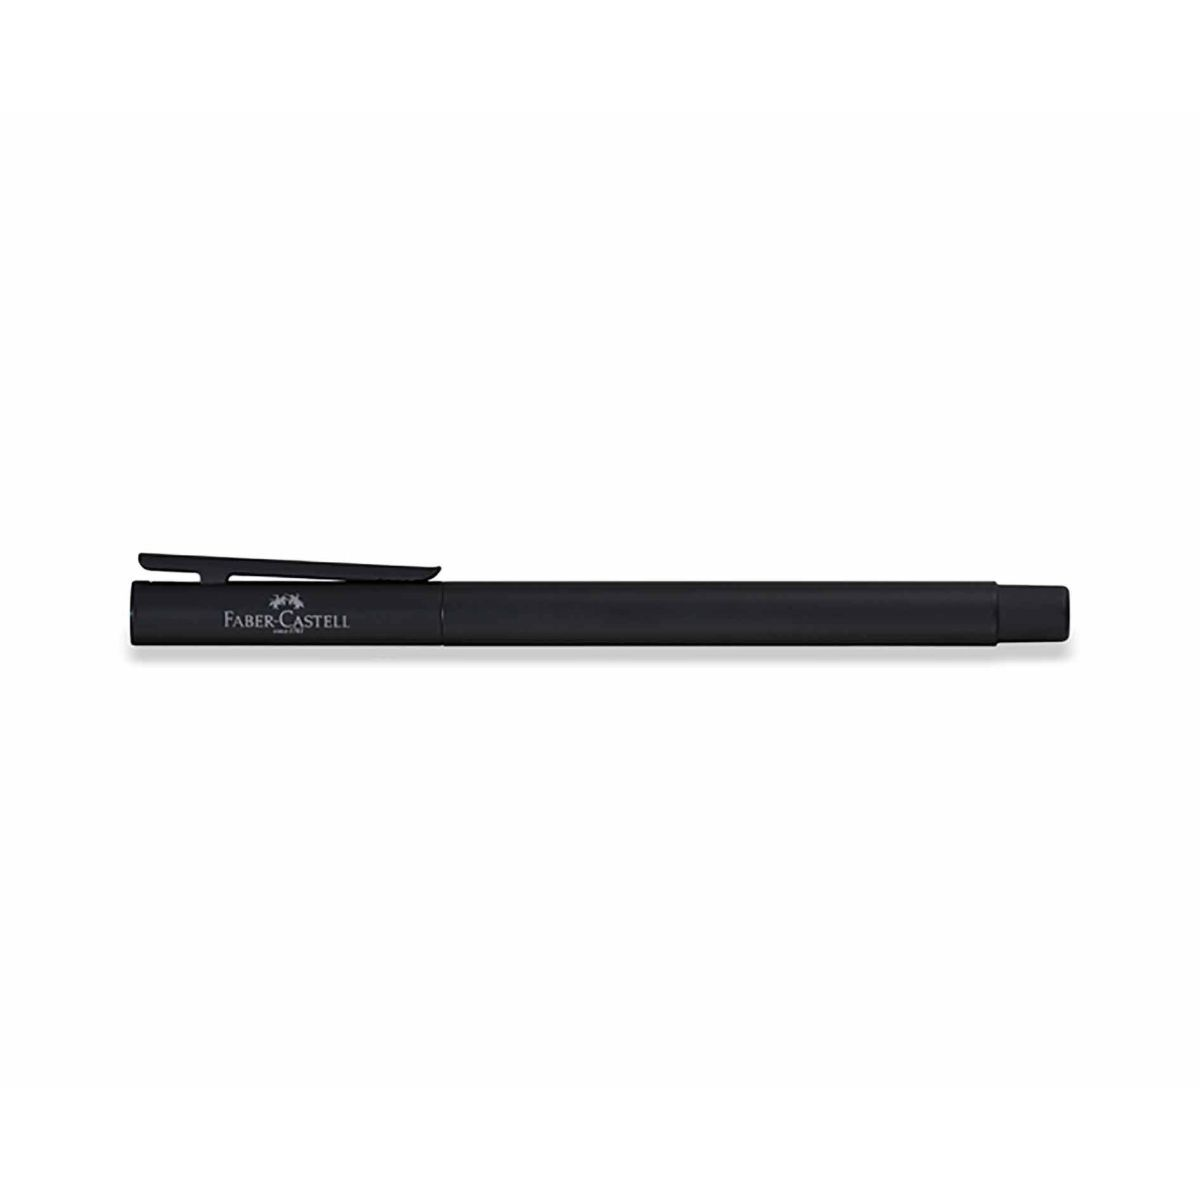 Faber Castell Neo Slim Fountain Pen Matte Black